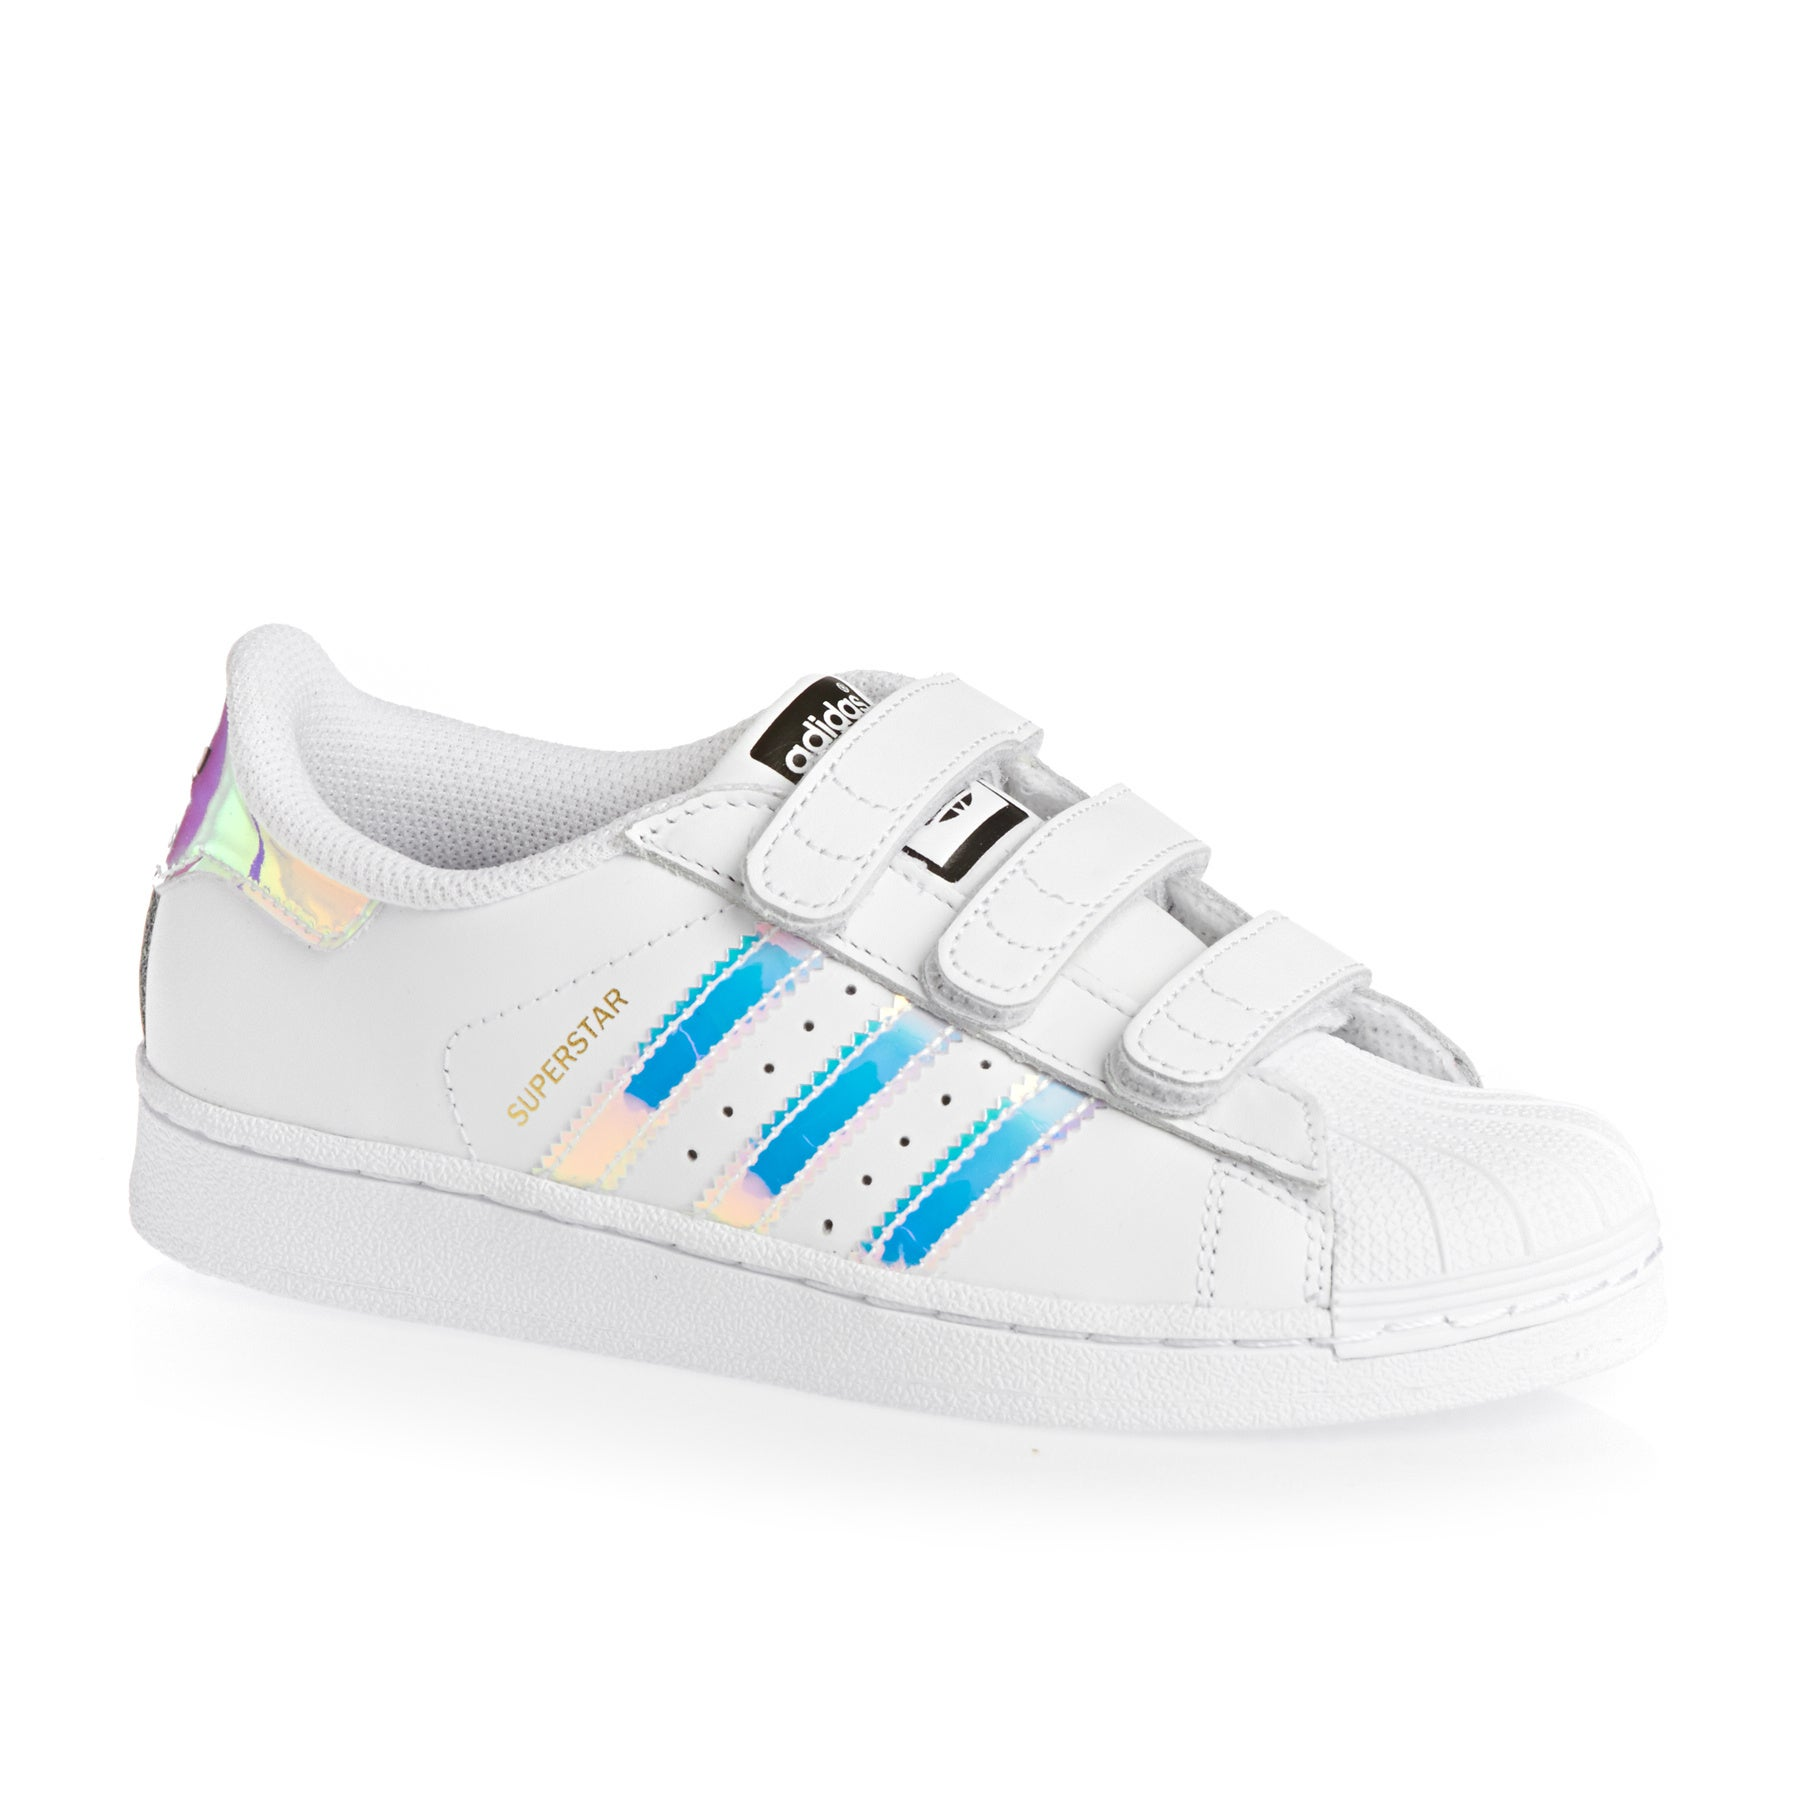 Adidas Originals Superstar CF Girls Shoes - White/metallic Silver